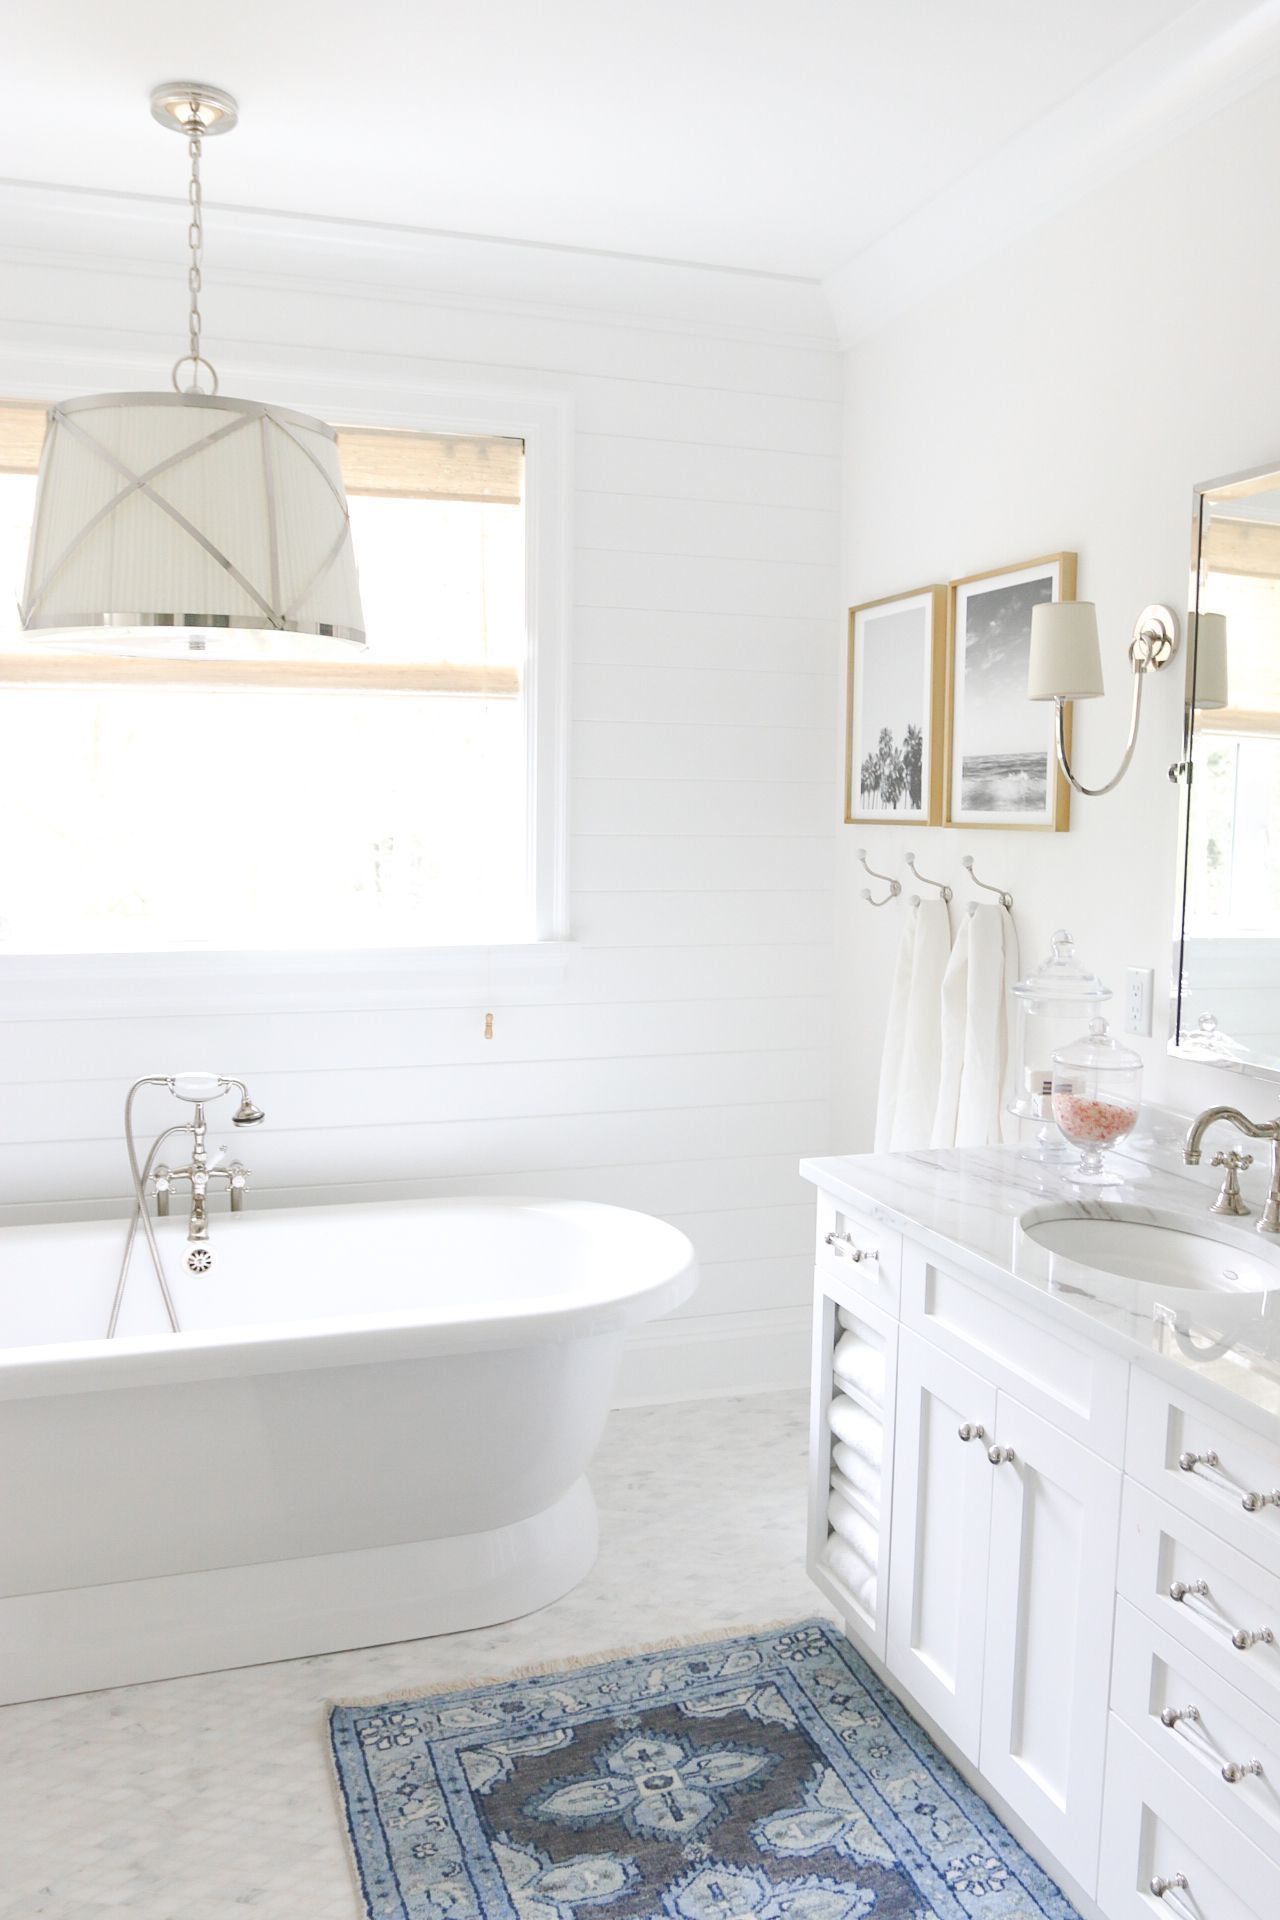 Master Bedroom Bathroom Tub - Feeling Coastal - Httpmonikahibbscom